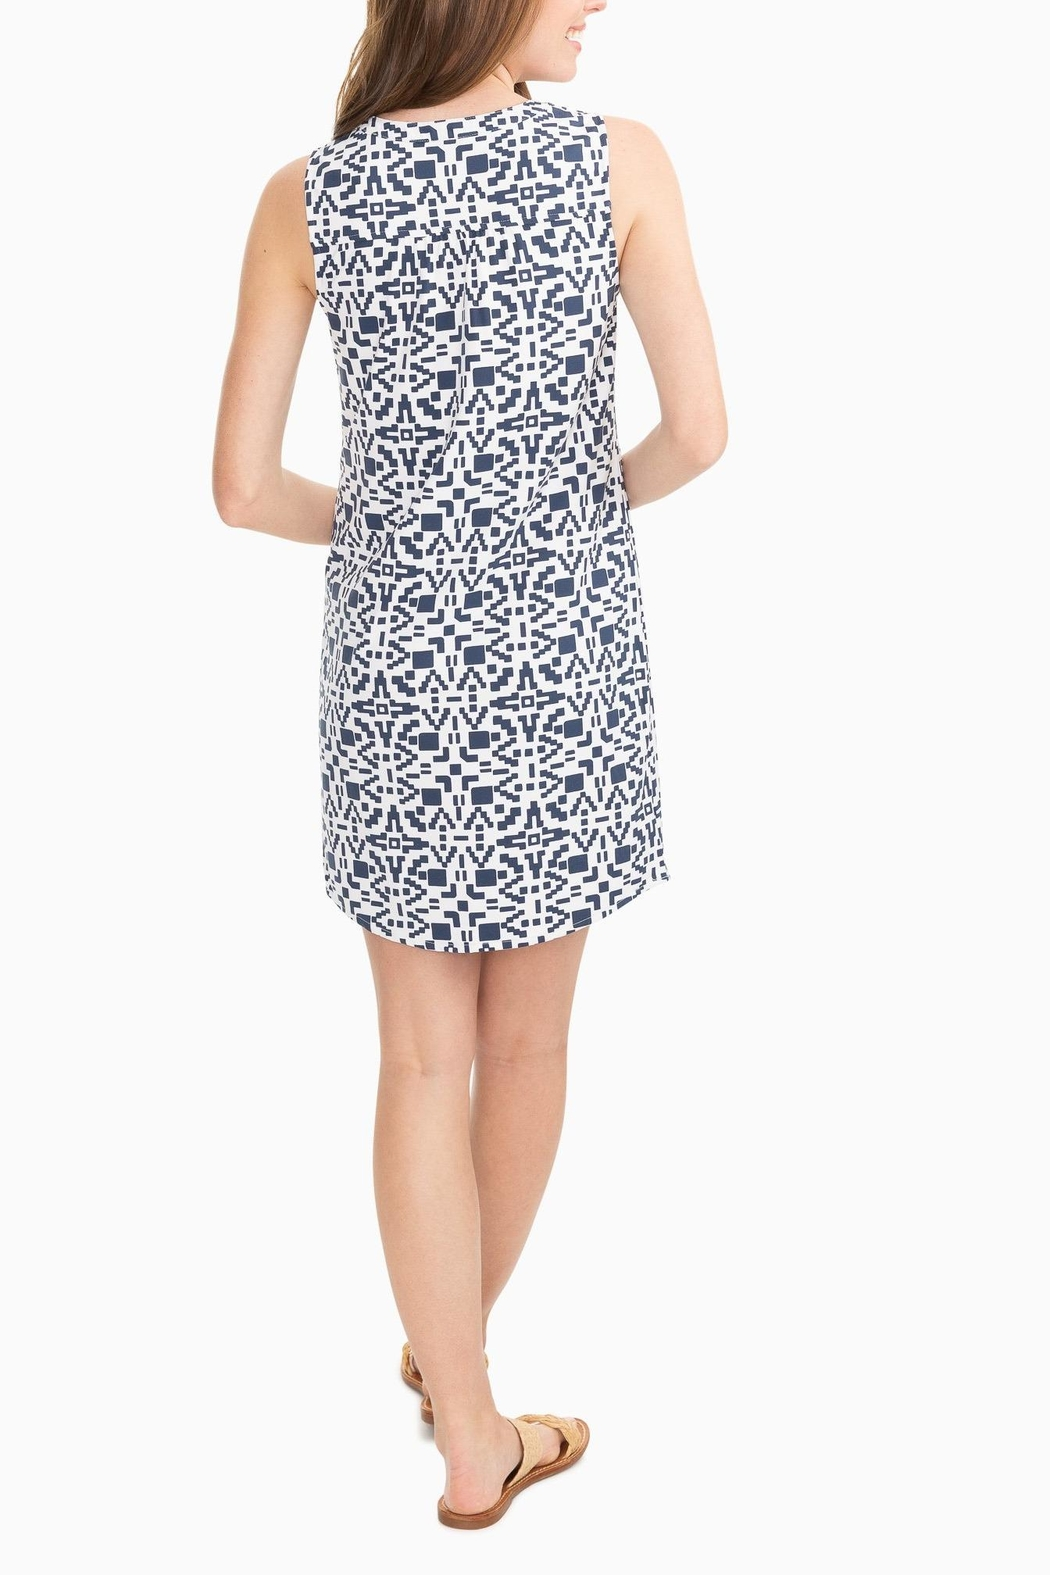 Southern Tide Robyn Performance Dress - Front Full Image